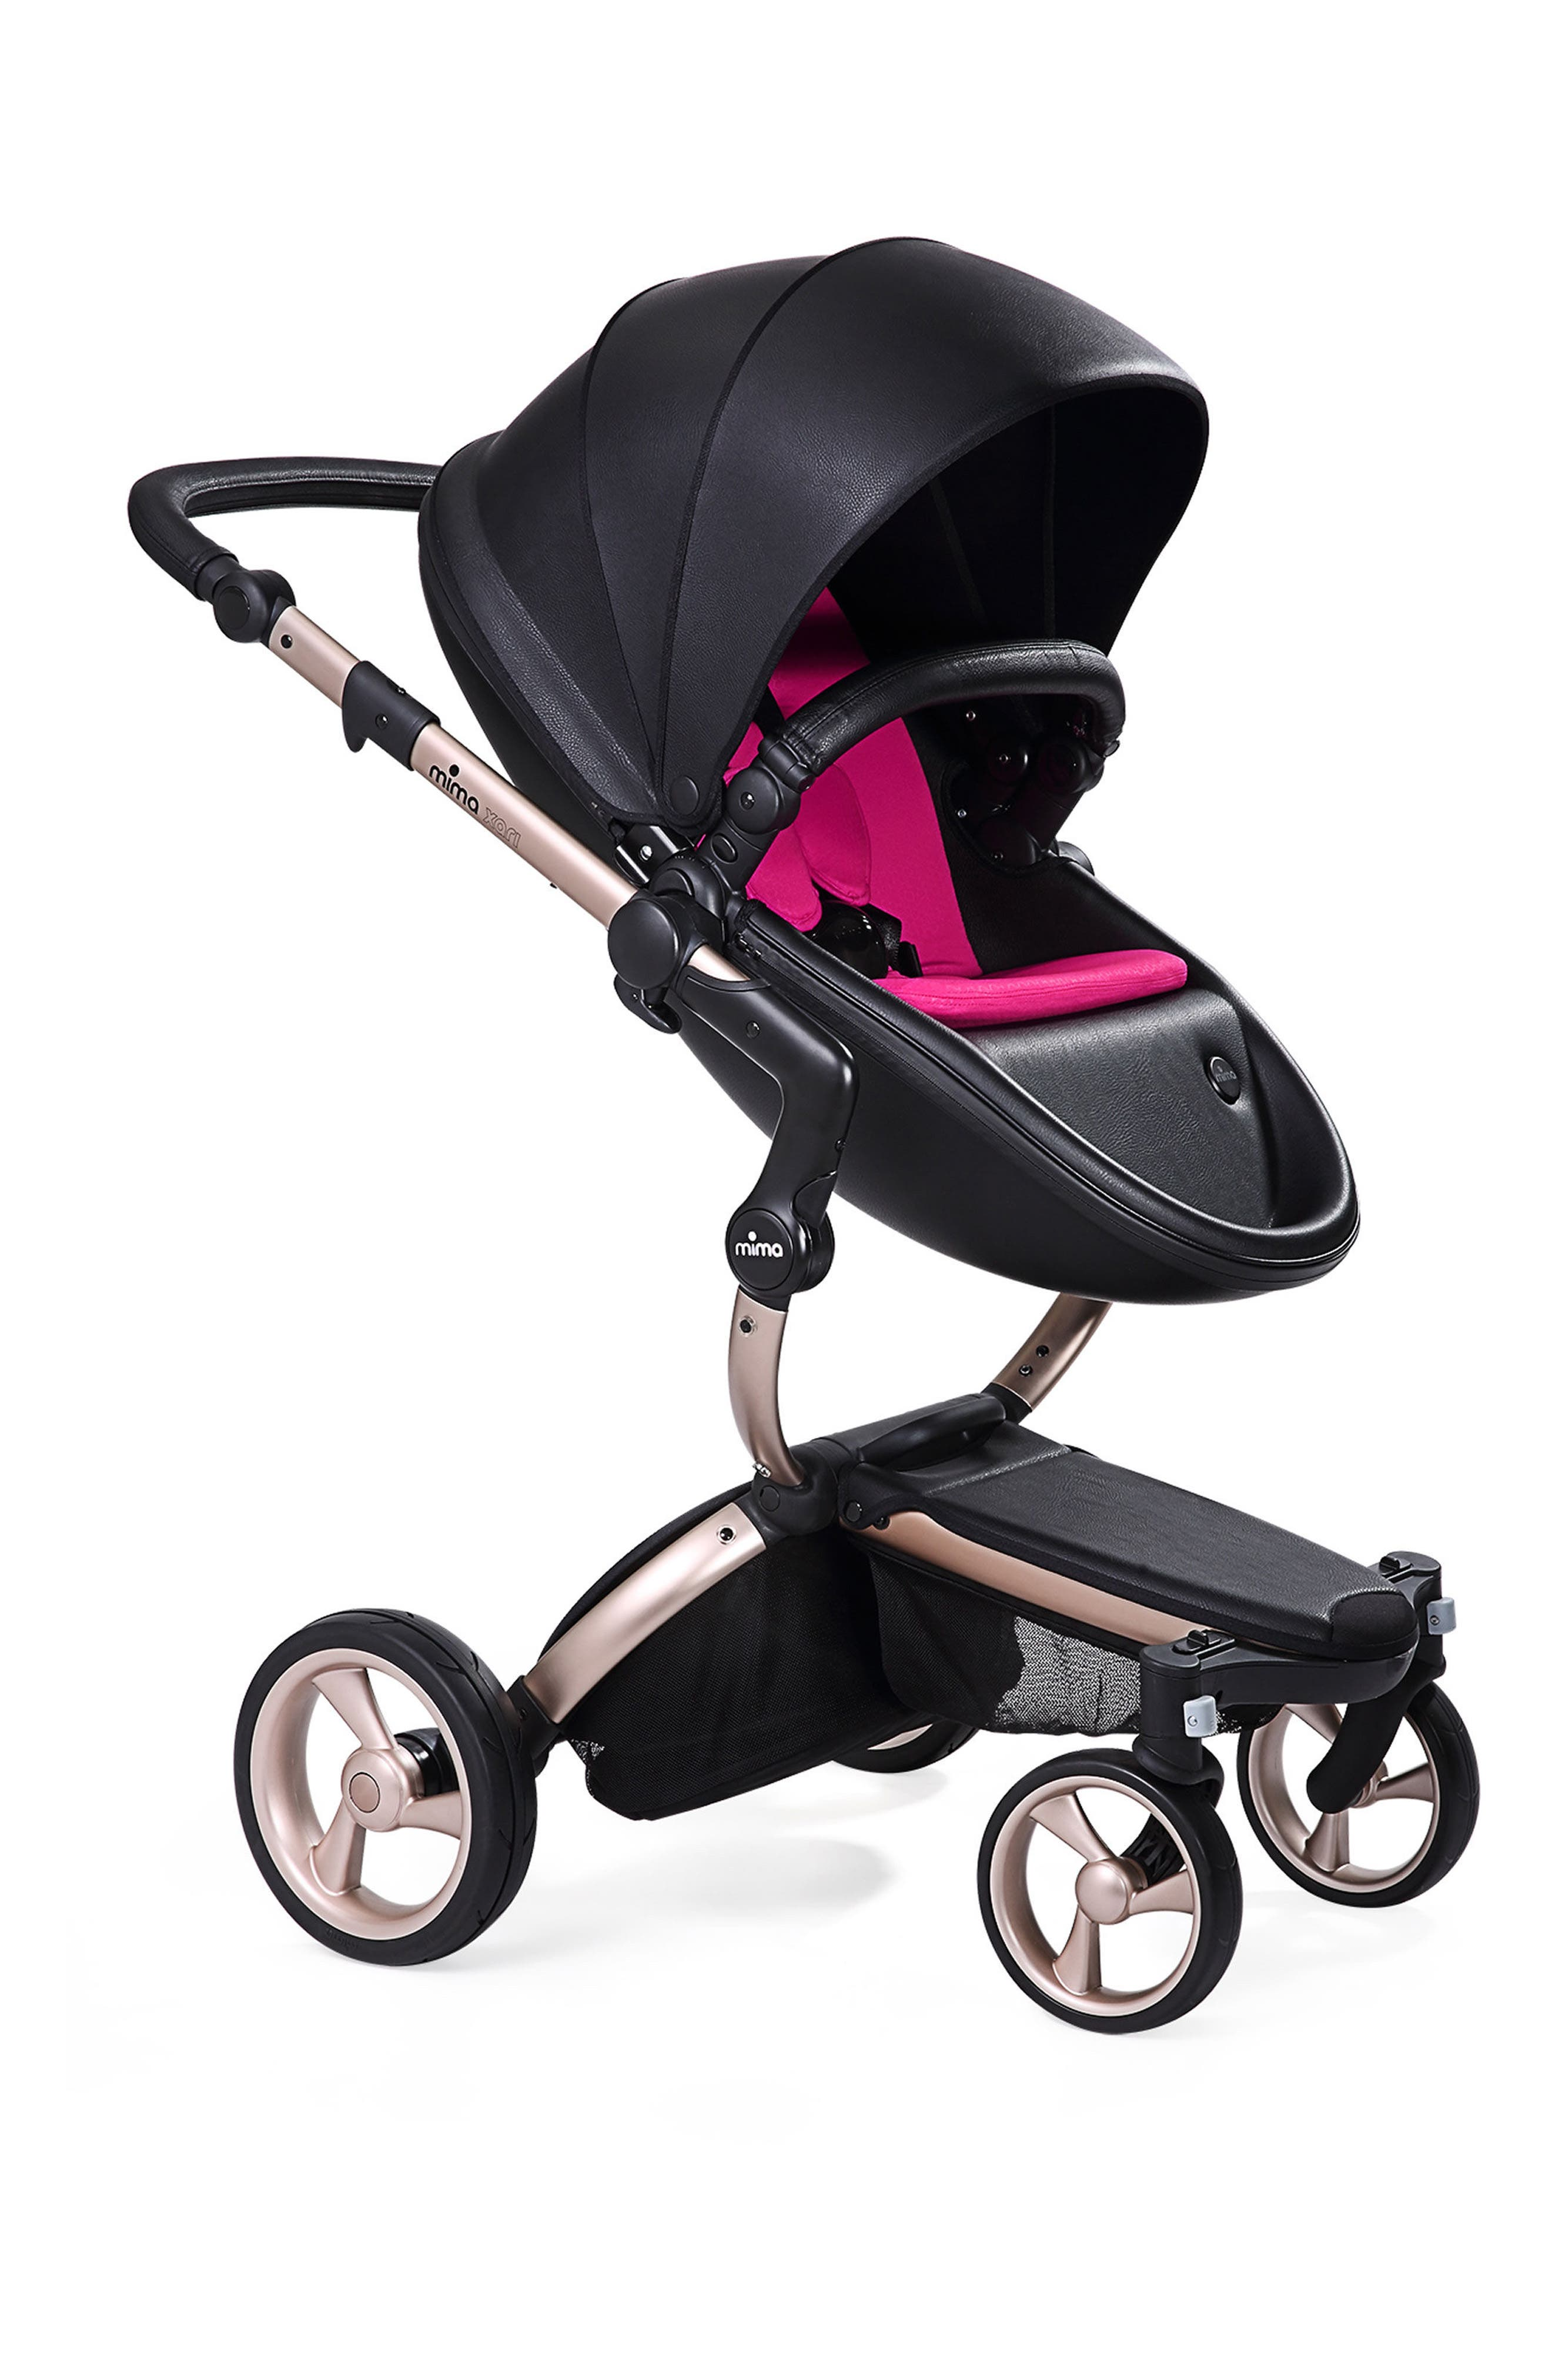 Xari Rose Gold Chassis Stroller with Reversible Reclining Seat & Carrycot,                             Main thumbnail 1, color,                             BLACK/ HOT MAGENTA